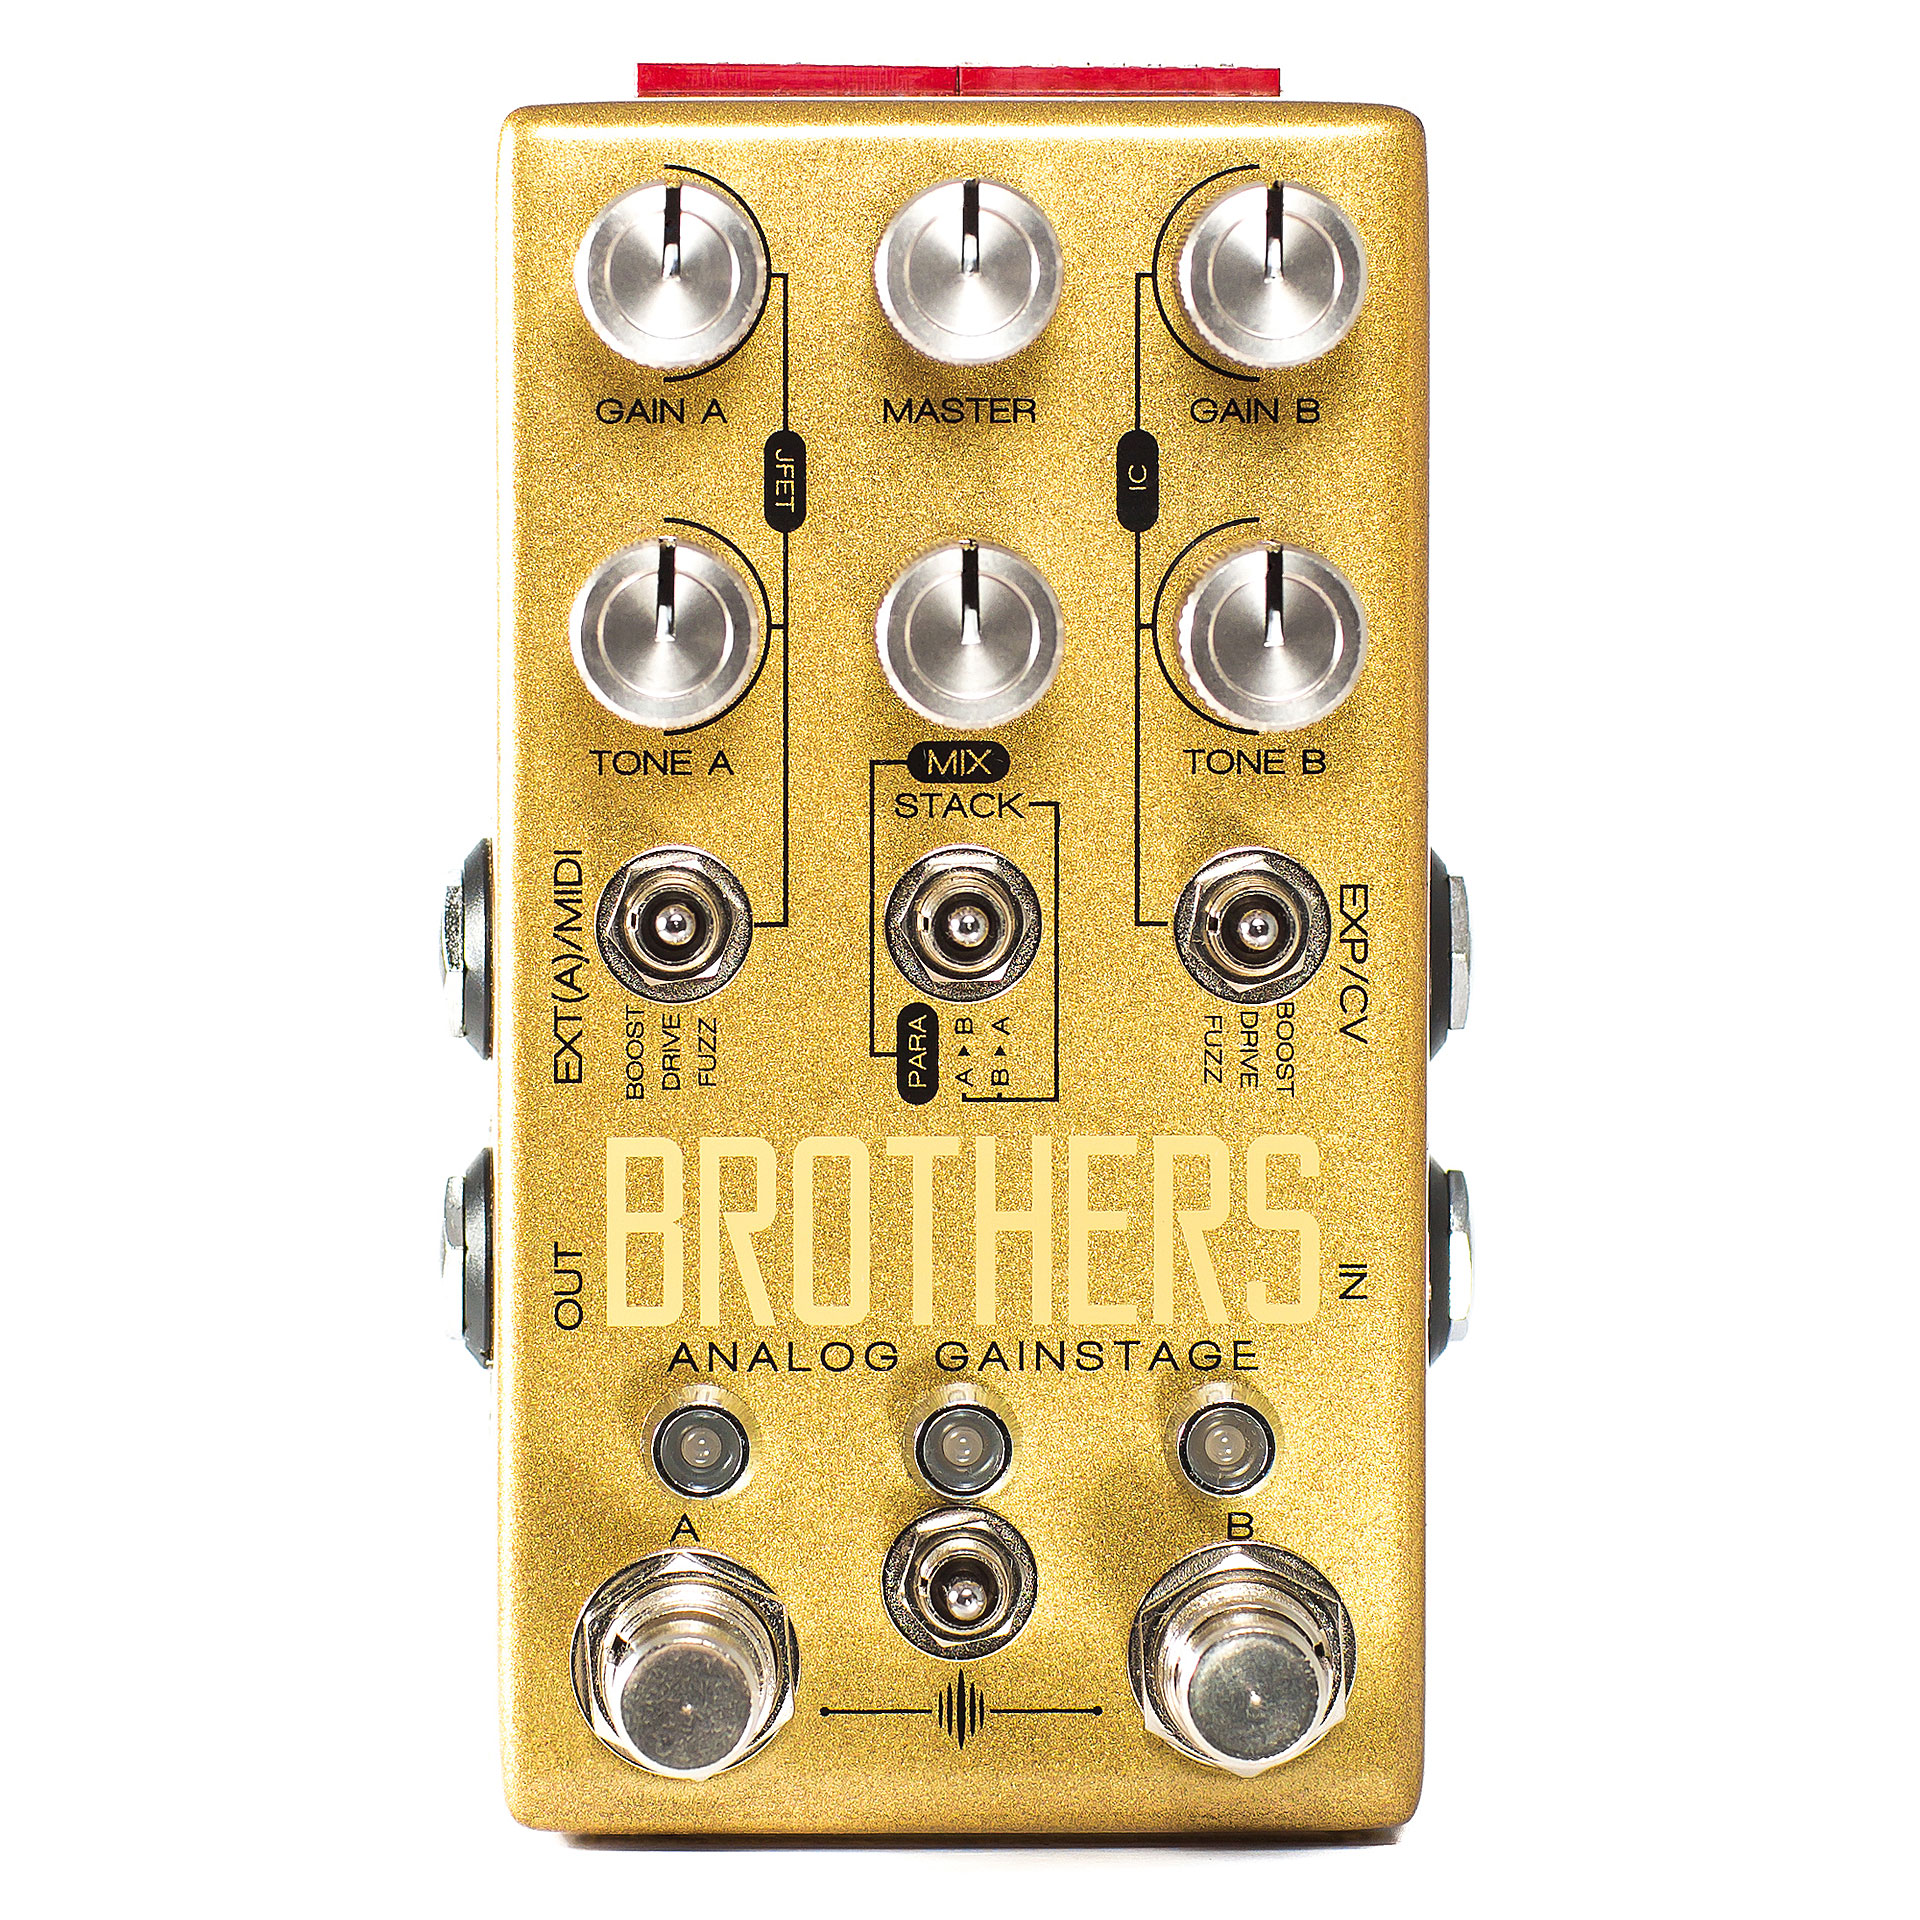 Chase bliss audio brothers guitar effect for Property brothers bliss